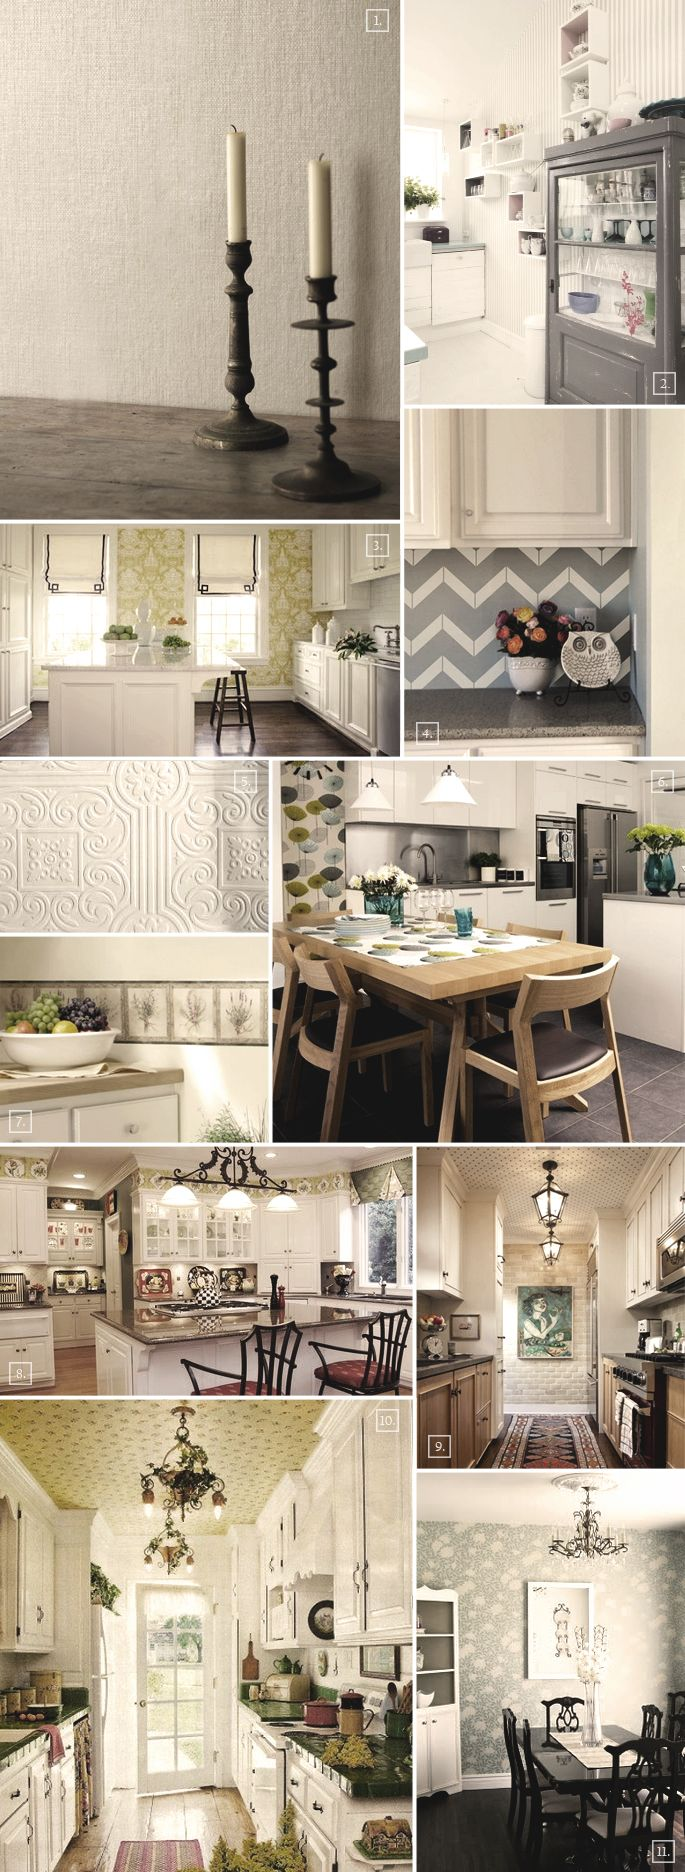 best plans for redecorating images on pinterest home ideas